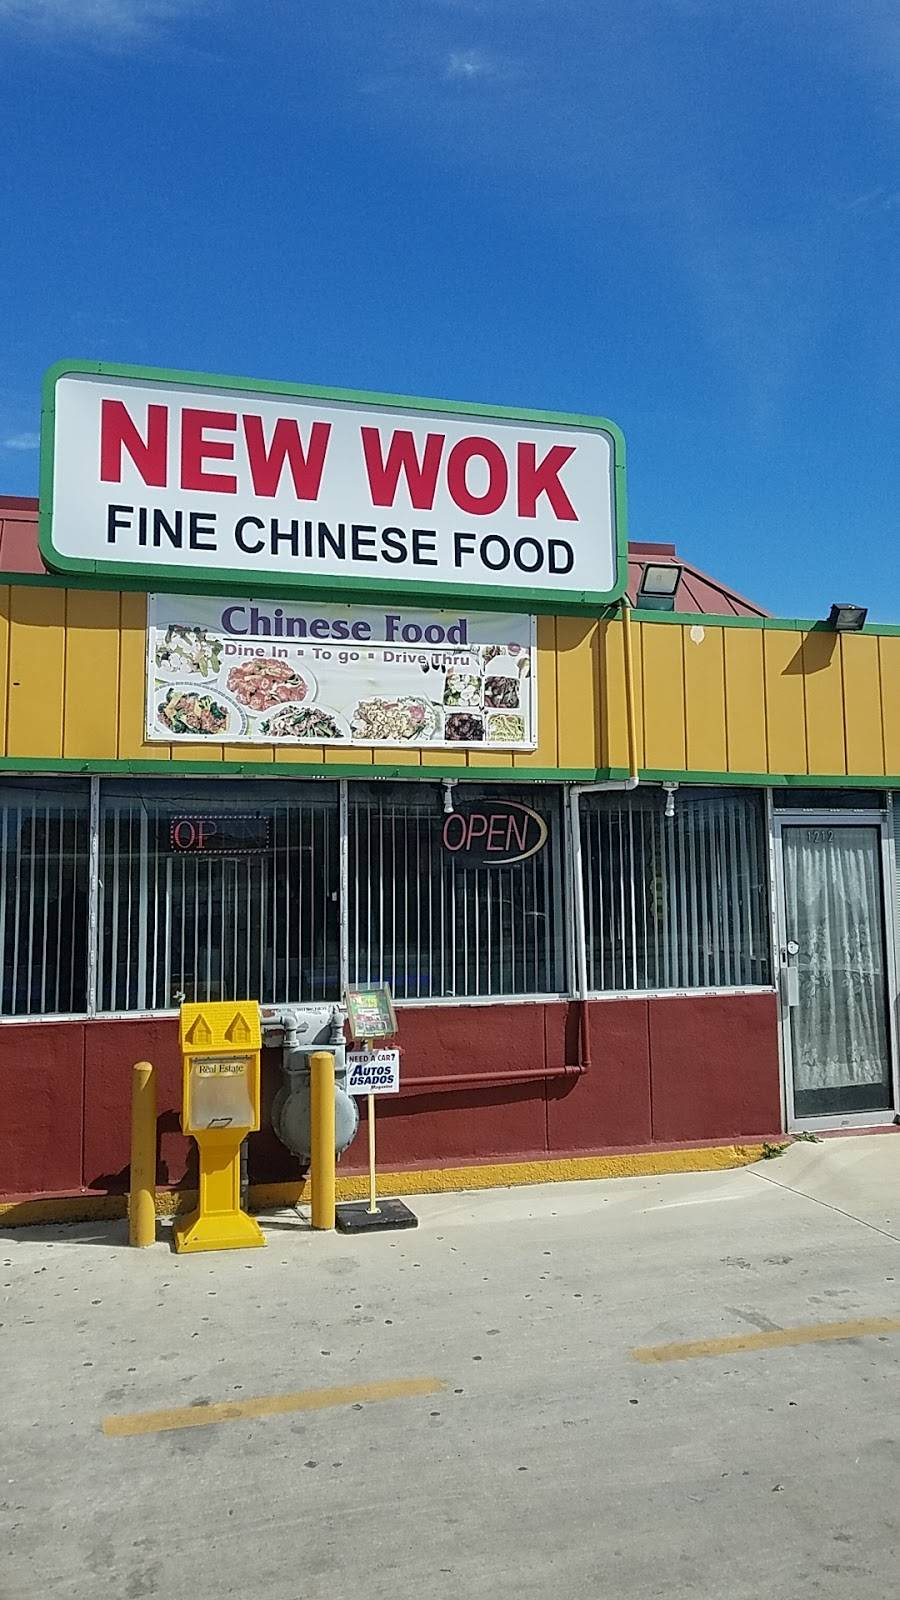 New Wok Express | restaurant | 1212 S Buckner Blvd, Dallas, TX 75217, USA | 2143982889 OR +1 214-398-2889